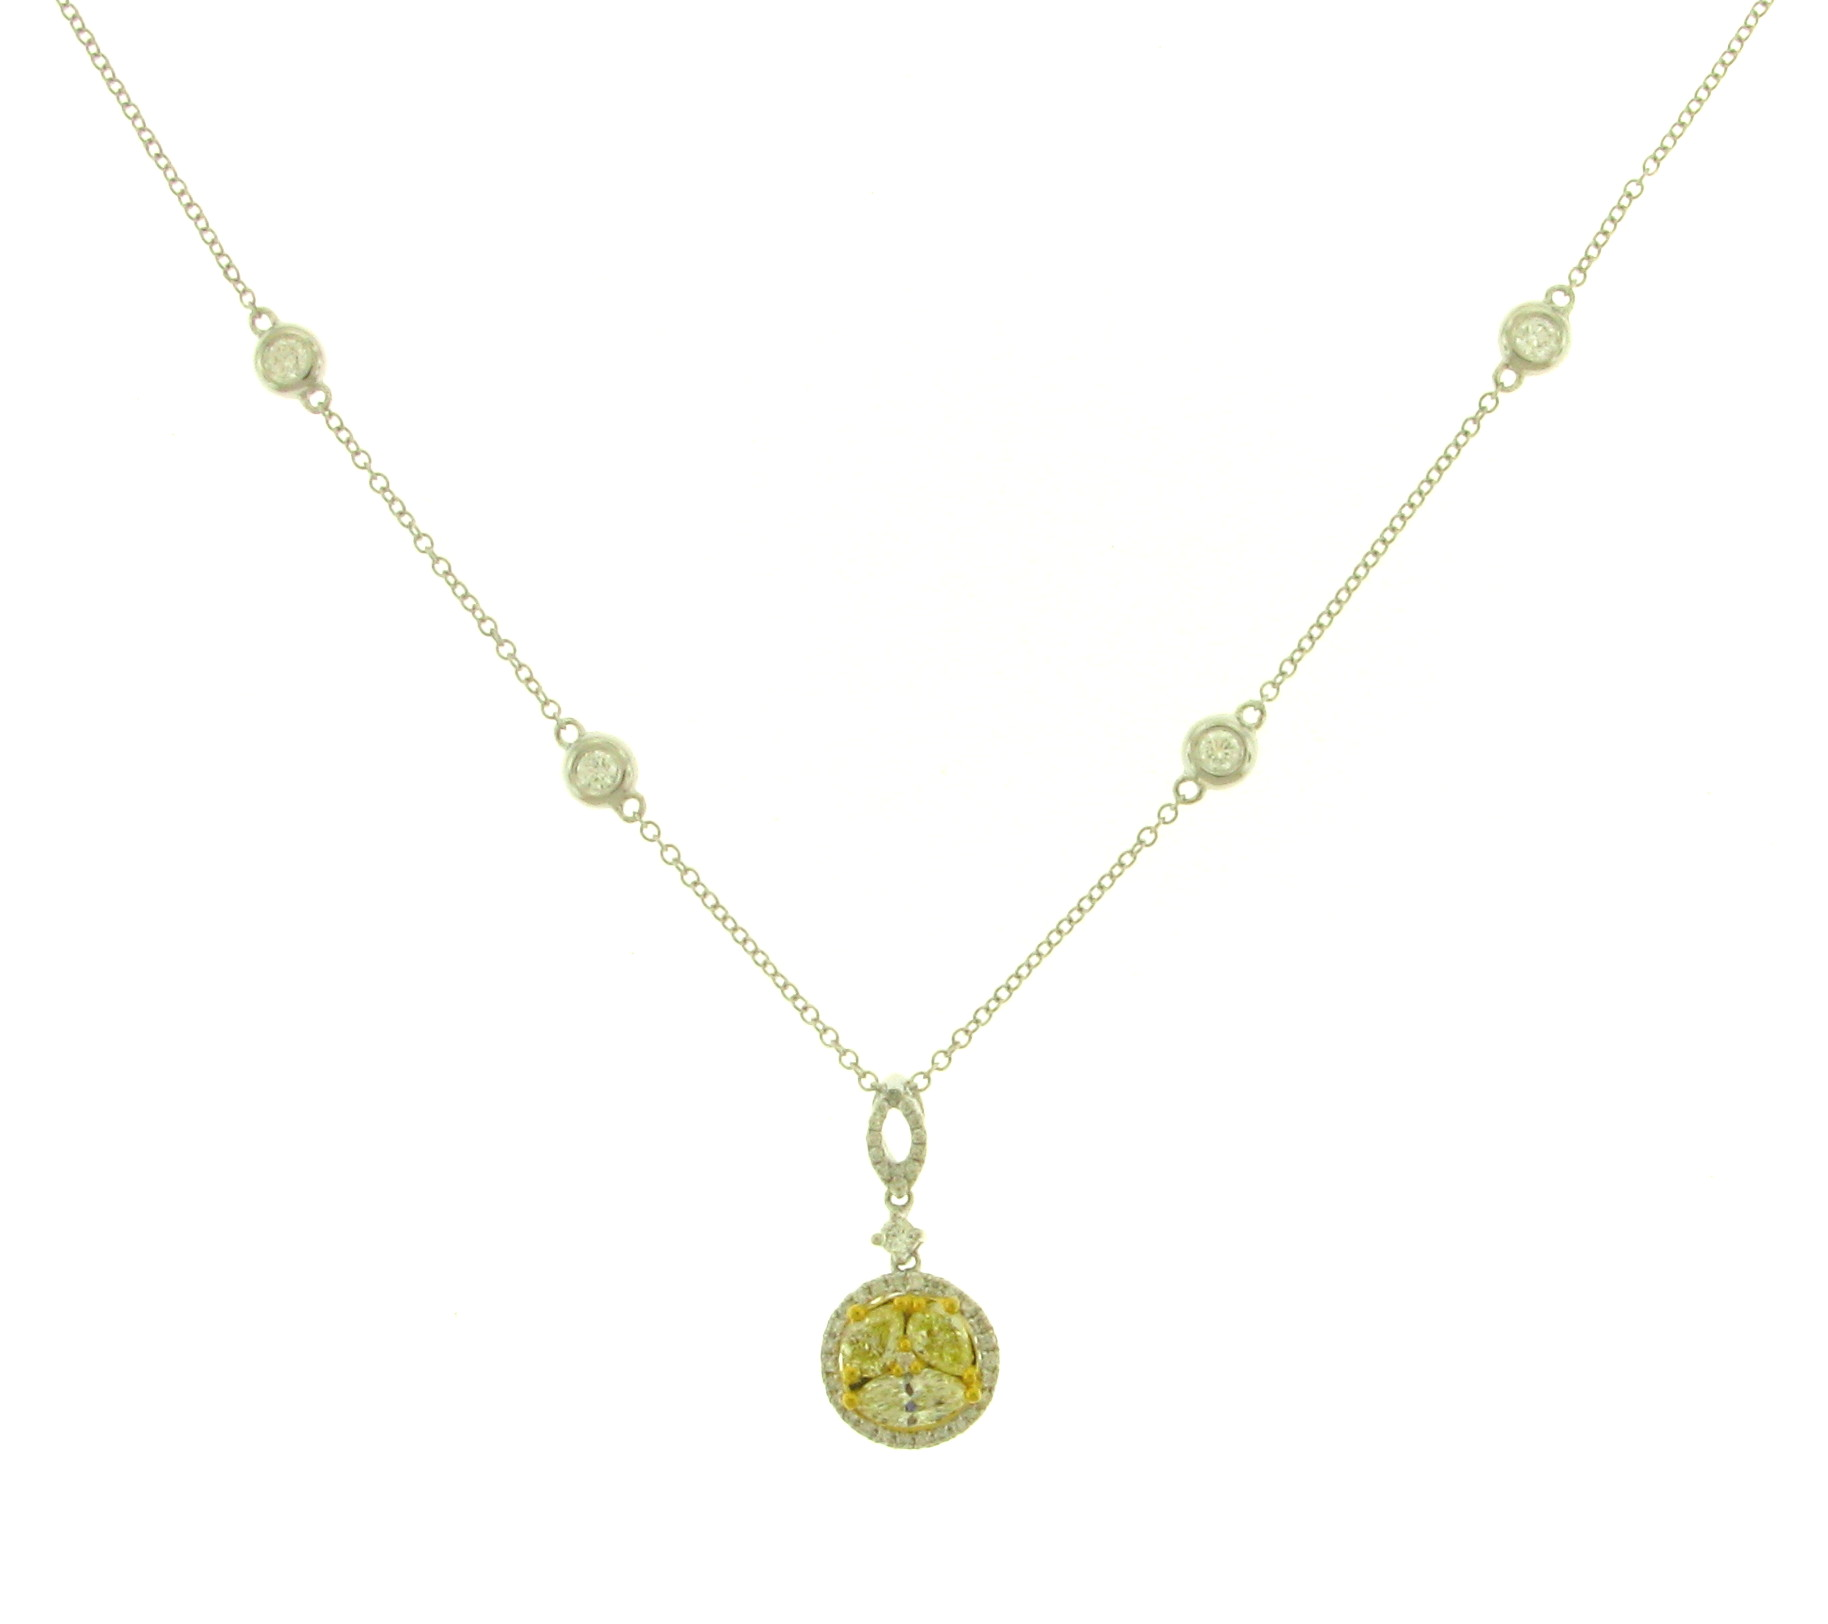 NEC063059 Yellow Diamond Pendant